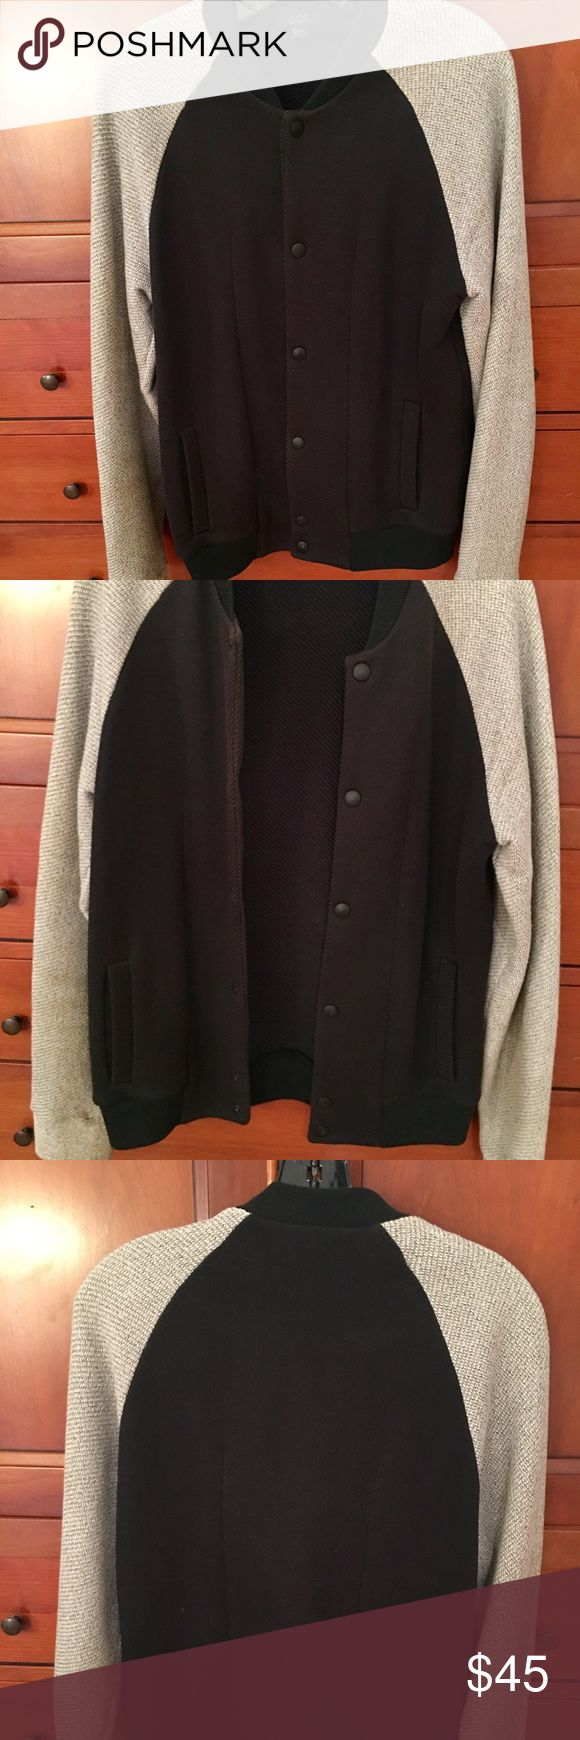 COS men's jacket warm and thick. COS Jacket. Black jacket with oatmeal colored sleeves. 90% cotton. US size small. Warm and cozy like a really thick lined sweater. COS Jackets & Coats Utility Jackets